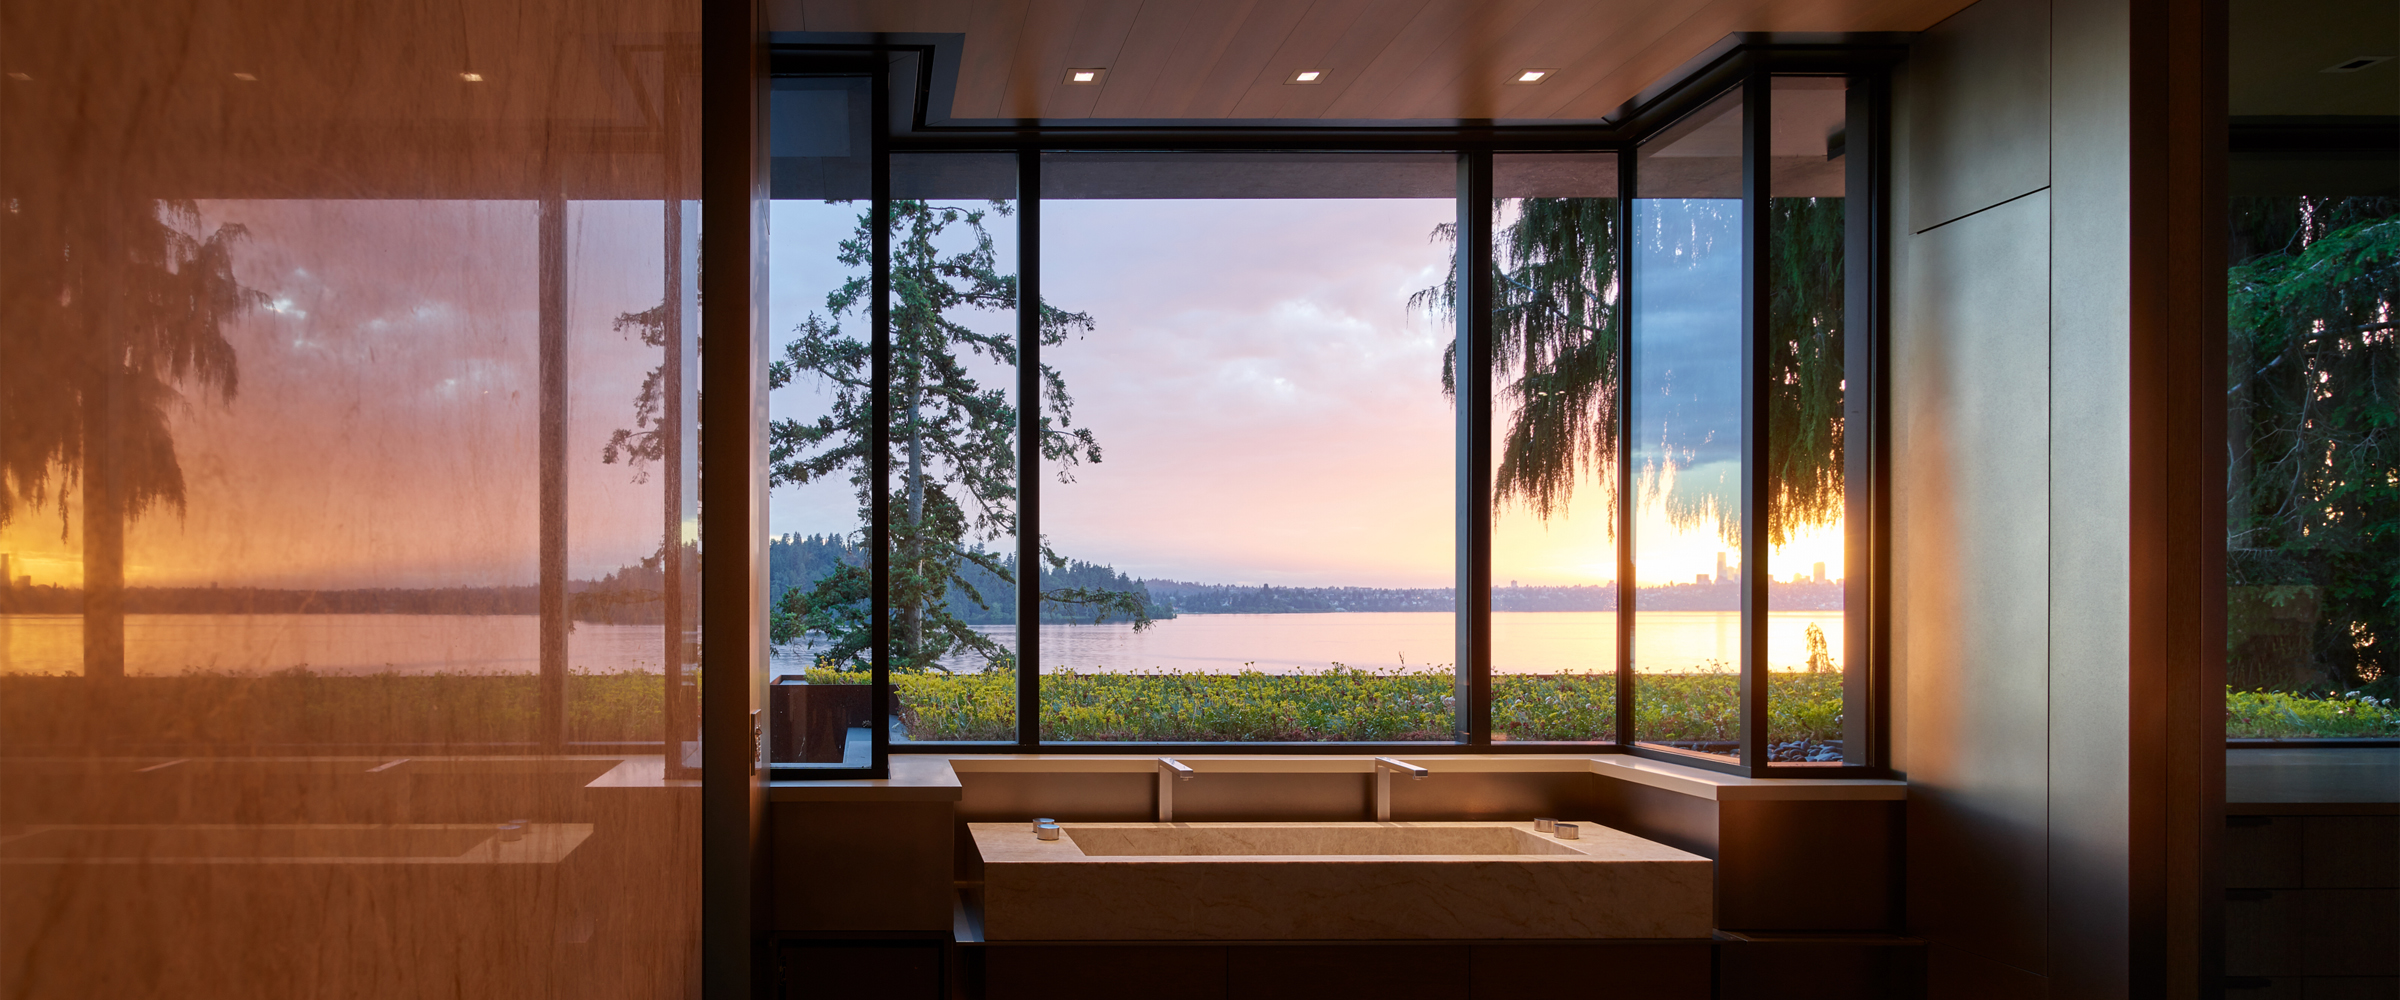 Mercer Island Residence<br><gridTitle>Graham Baba Architects</gridTitle>